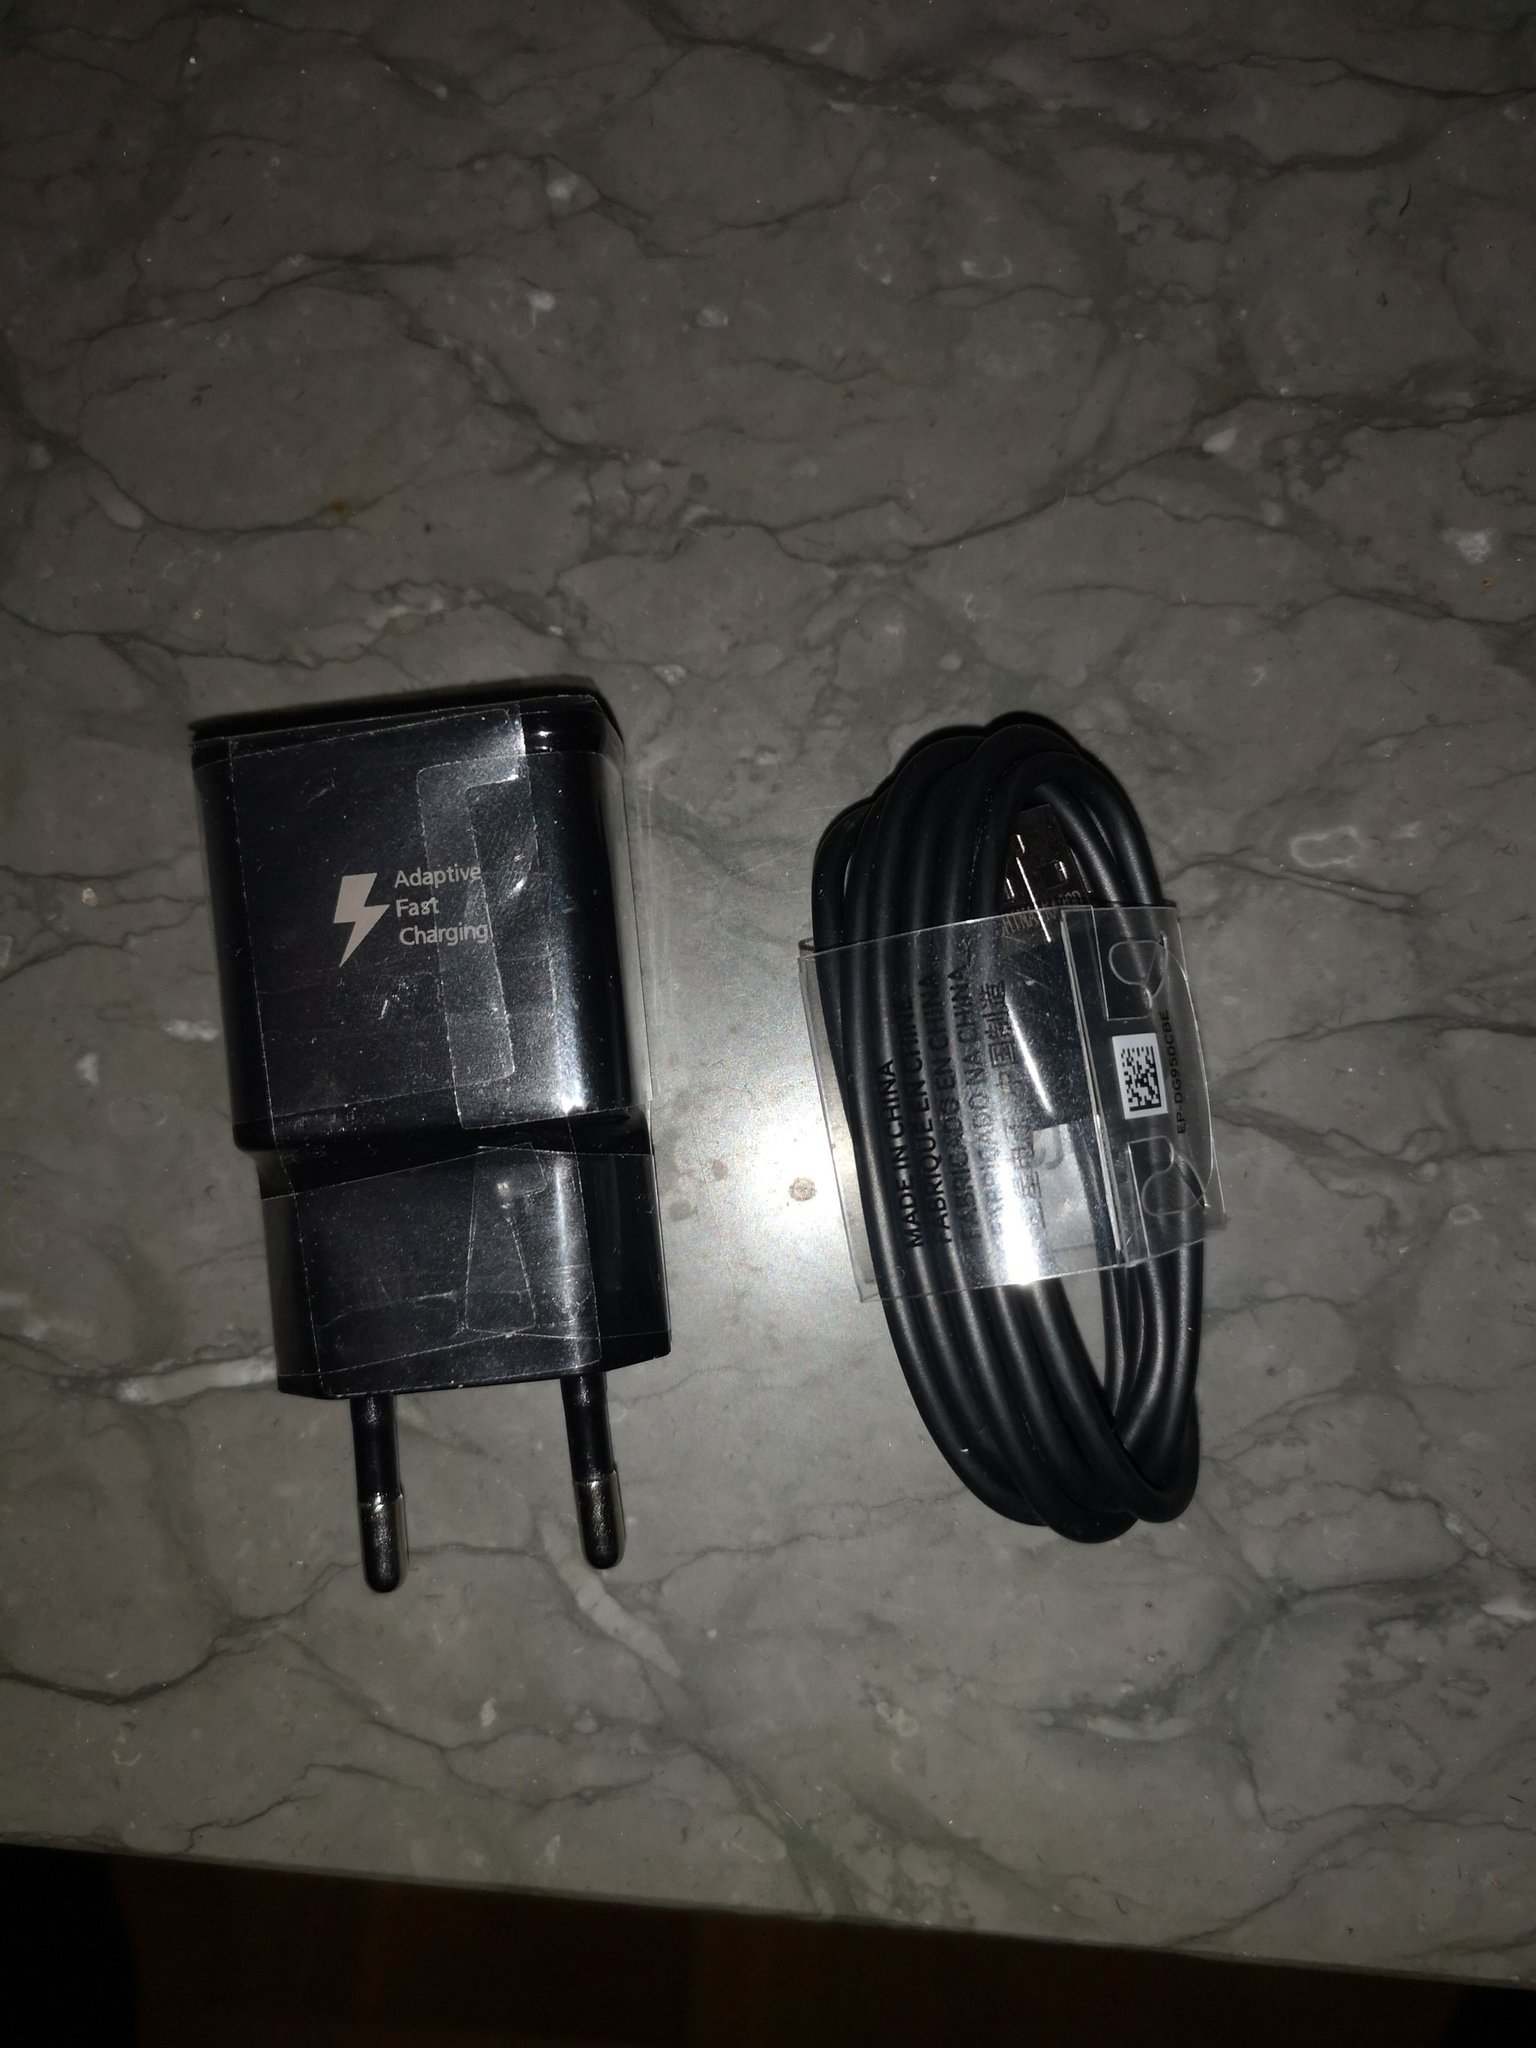 2st Samsung laddare Charger Bra kvalitet S10, S10+, S10E, S9, S9+, S8, S8+, Note